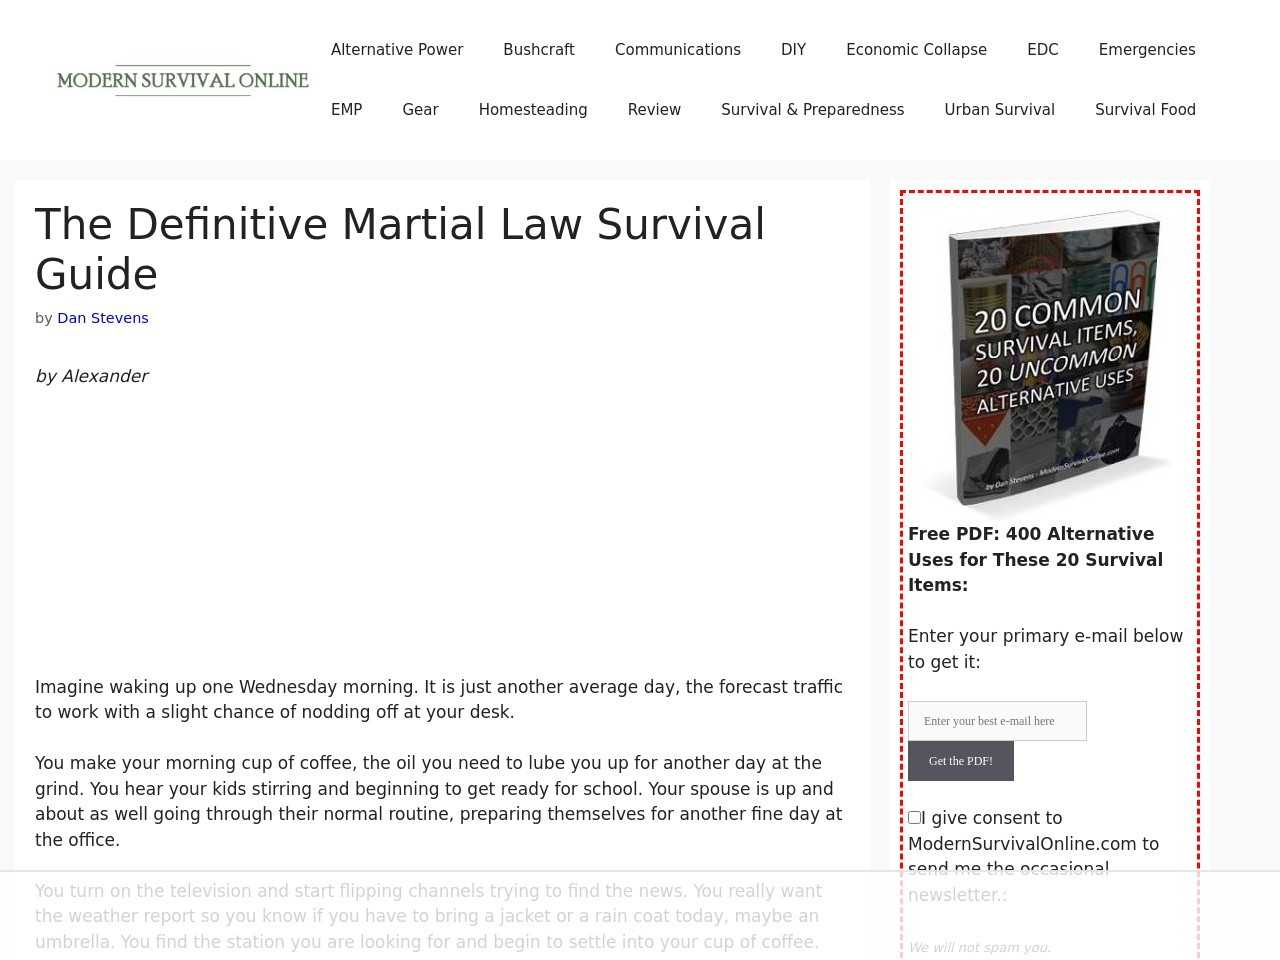 The Definitive Martial Law Survival Guide